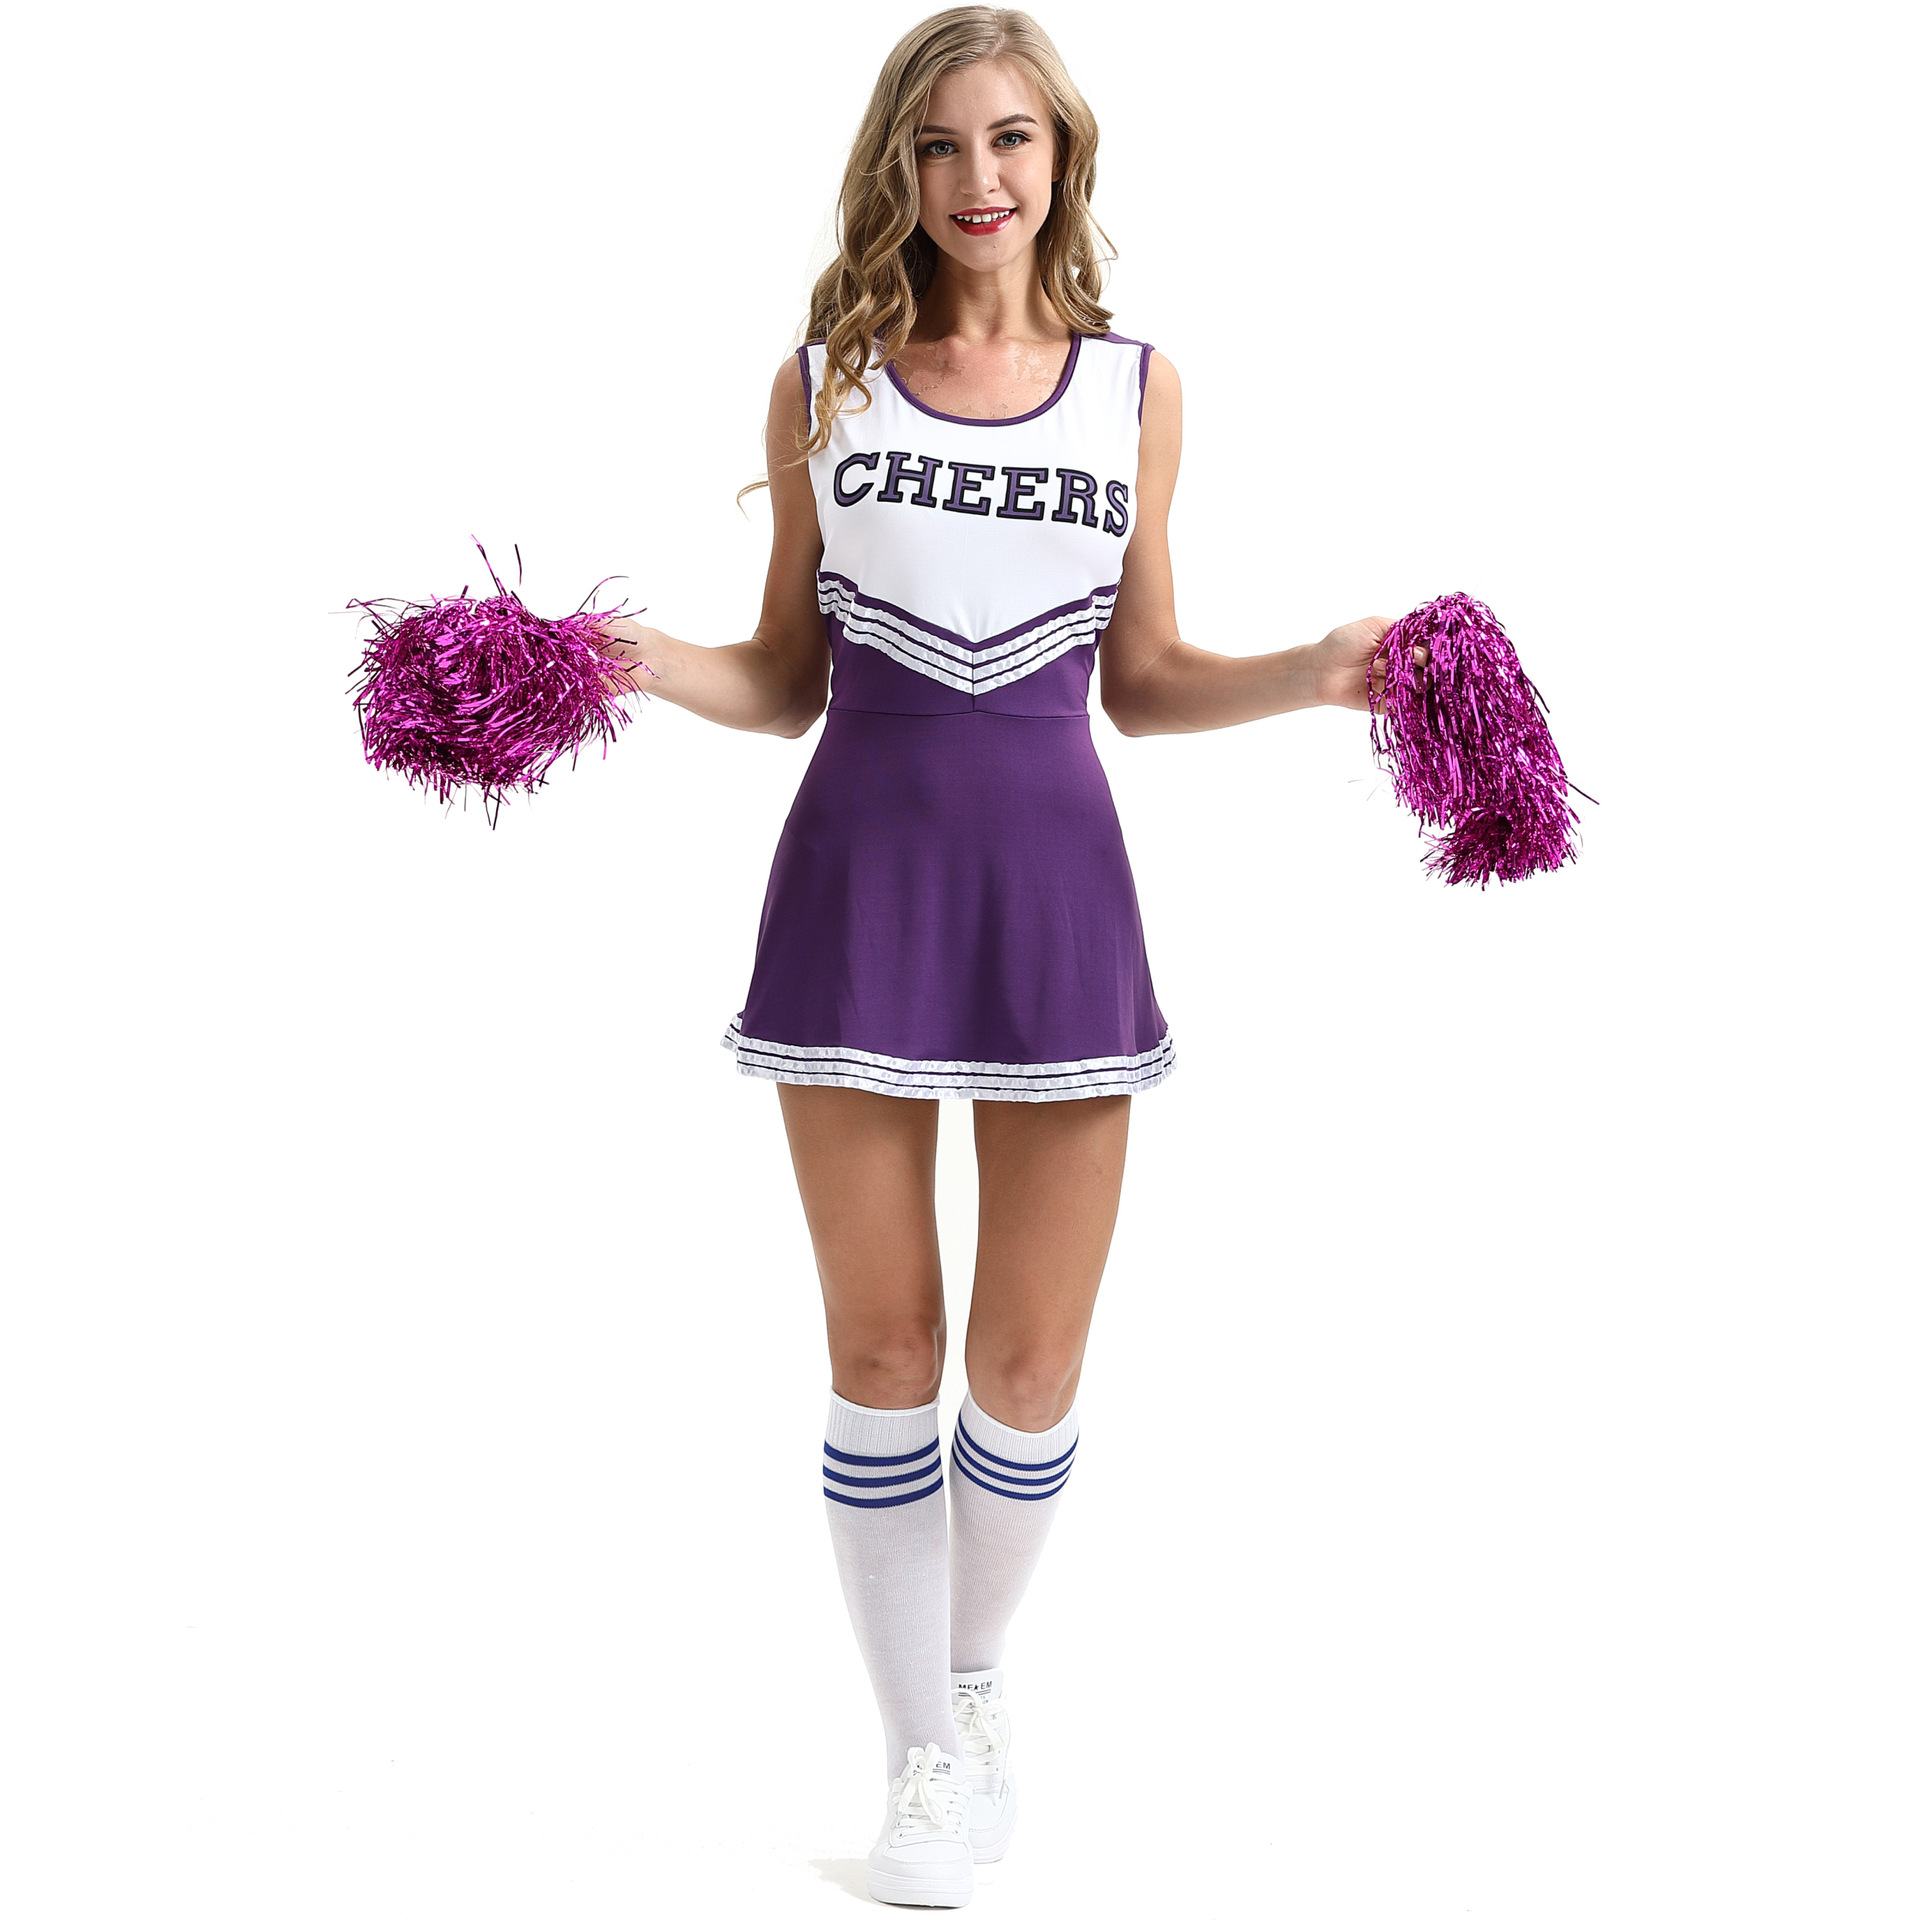 XL Sexy Female Cheerleader Costume Cheerleading Suits Uniform Stage Performance Shape Cheerleader Clothing Wiht Pom Poms